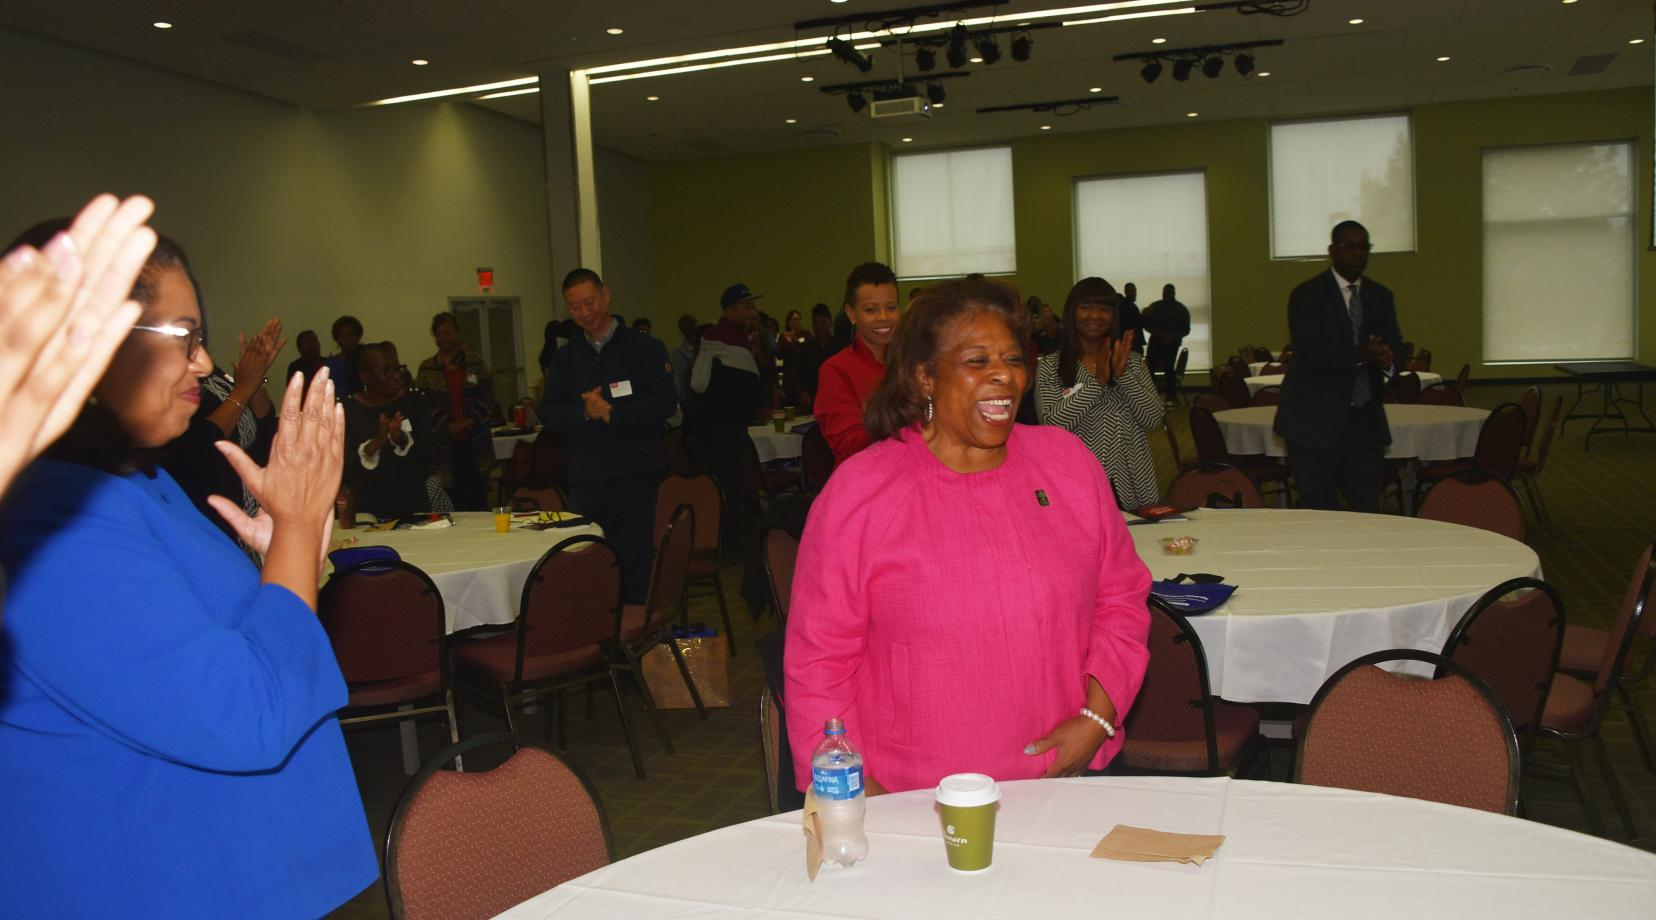 Following University President Wilma Mishoe's remarks at the Oct. 30 Professional Development Workshop, the parlor-filled gather gave her a standing ovation in recognition of the leadership she has provided during her tenure. Dr. Mishoe recently announced that she will retire at the end of 2019.